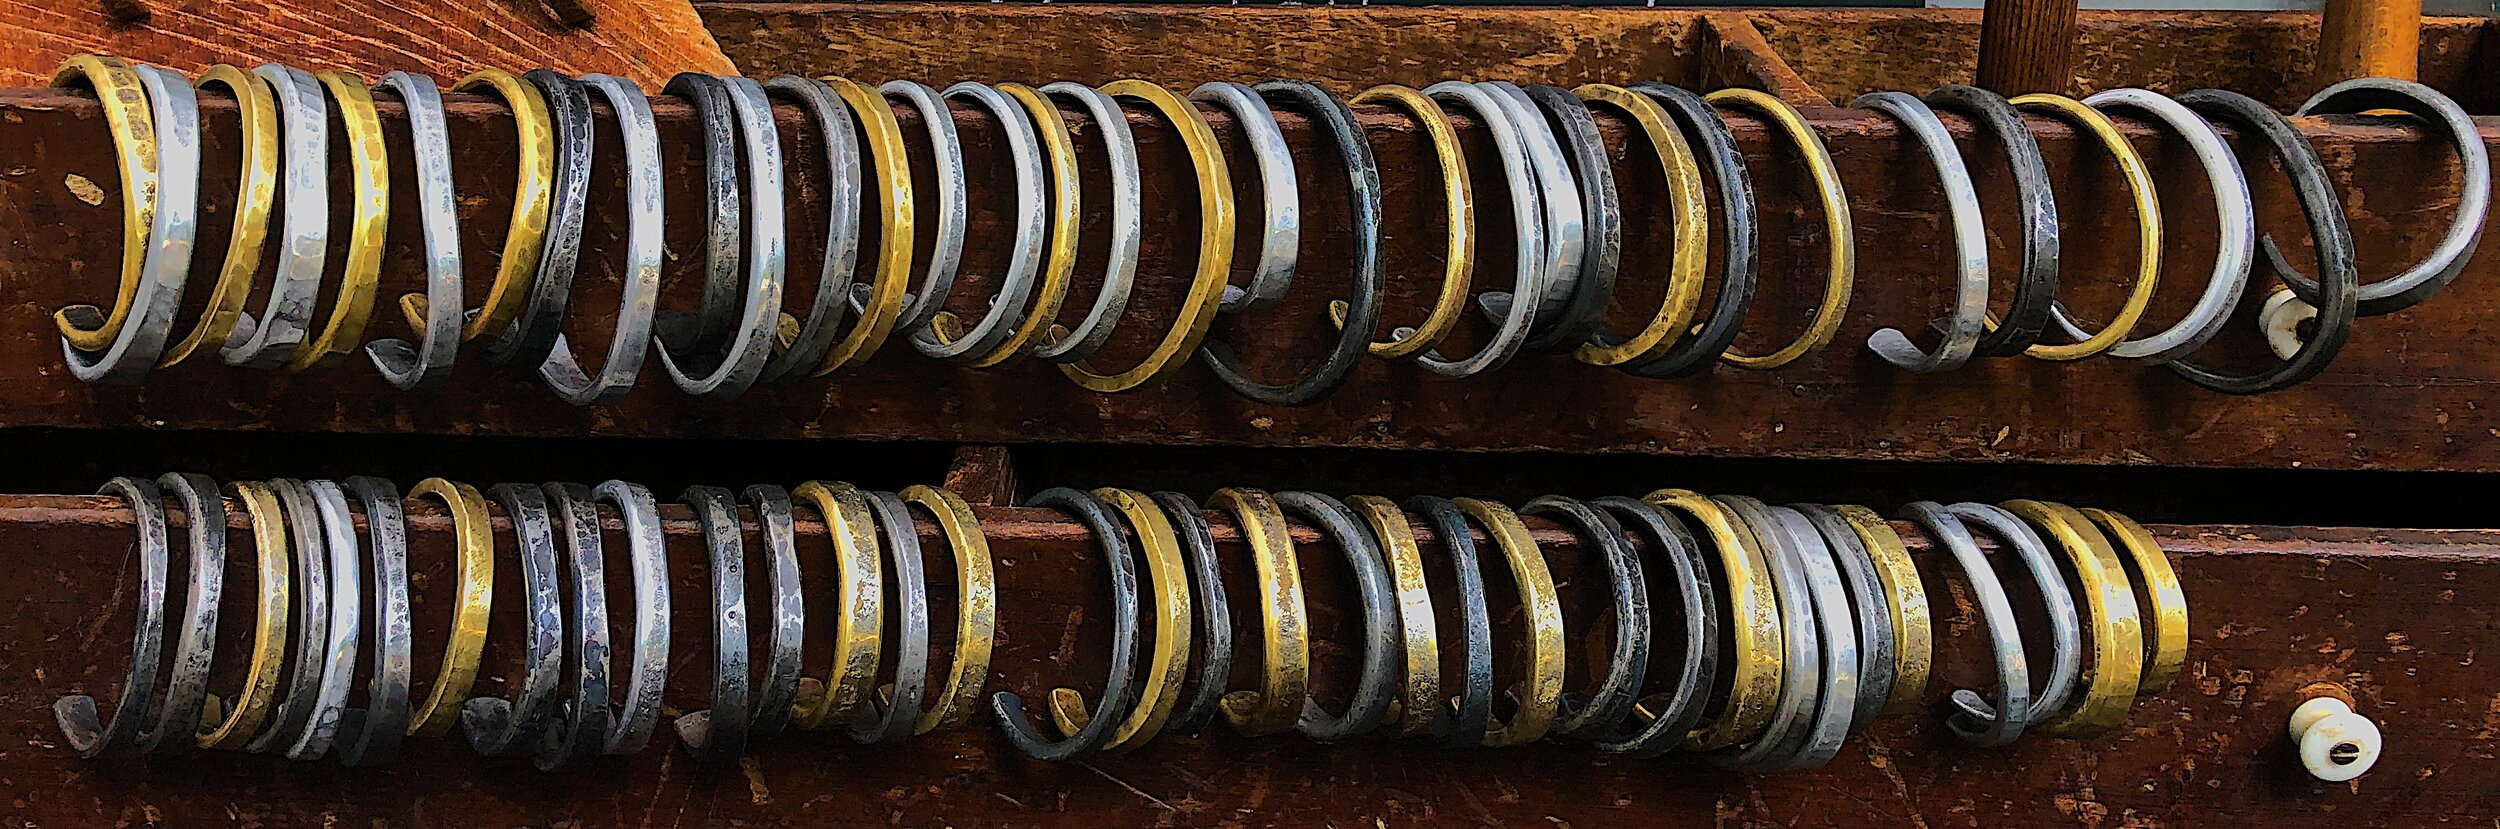 NCF Bracelets - Hand forged in solid brass, aluminum, and steel.